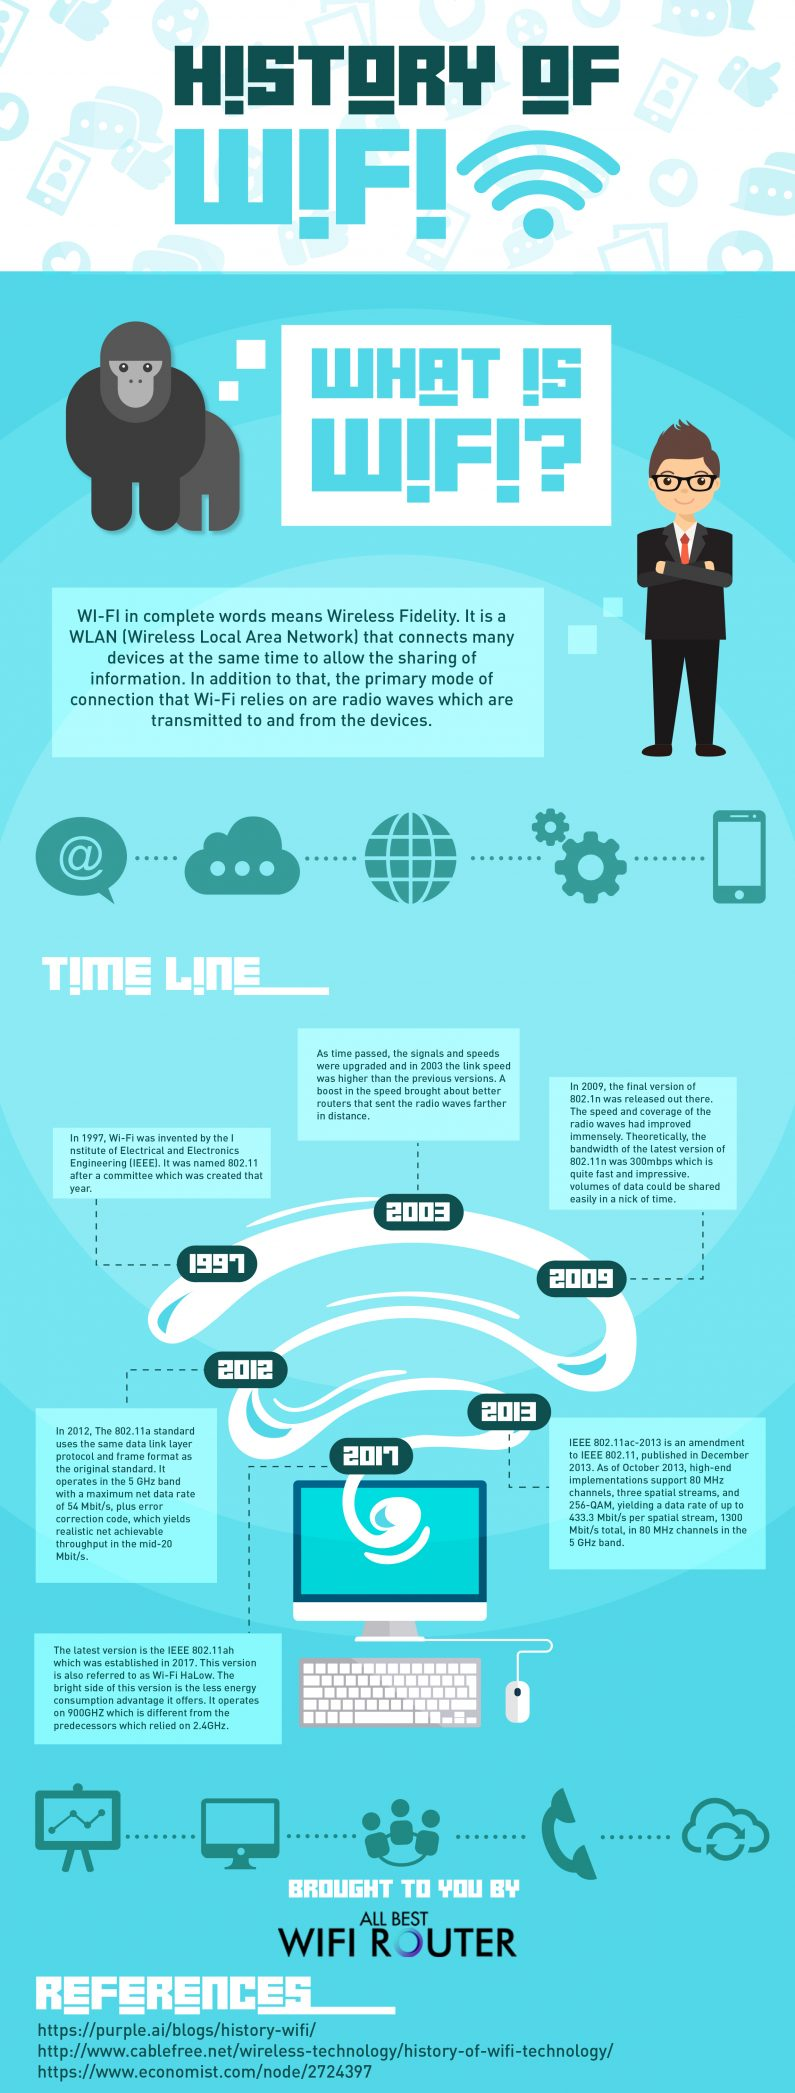 History of Wi-Fi